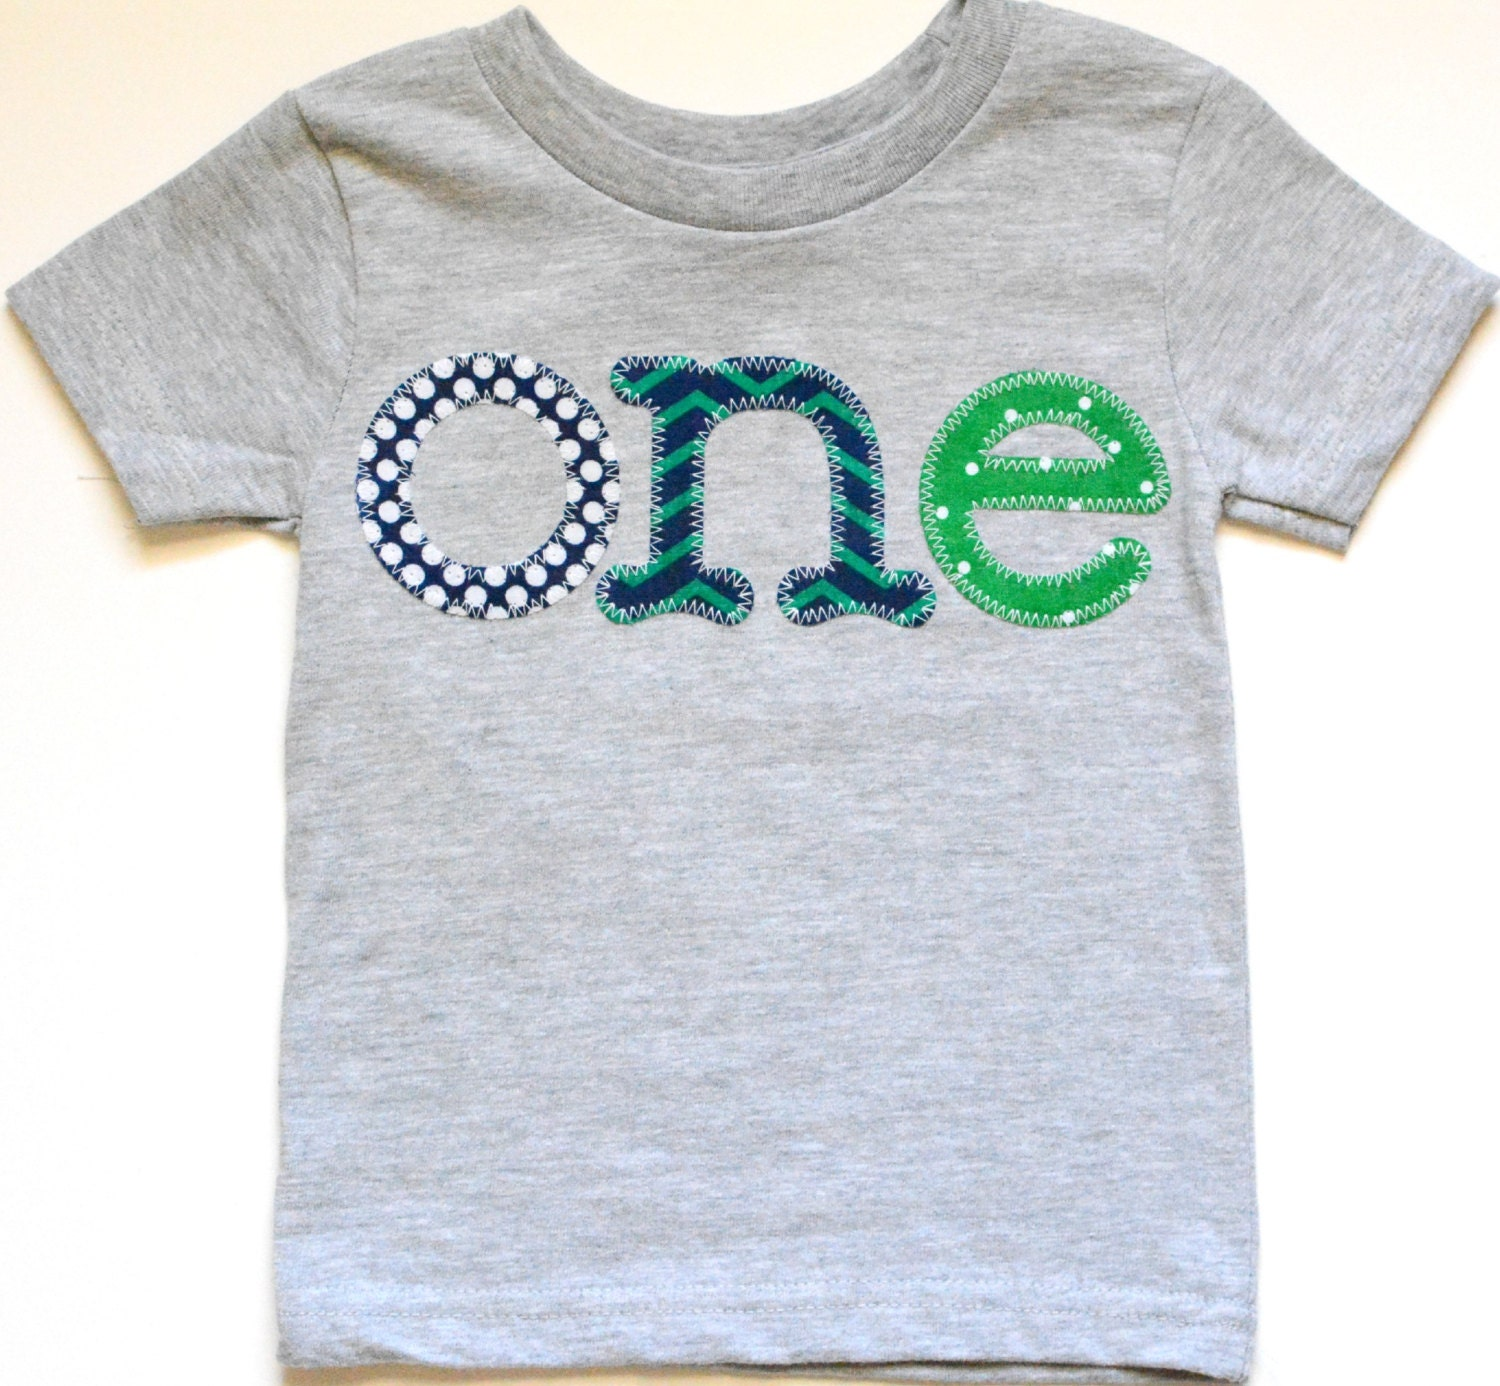 Find The Perfect Personalized Birthday Boy Shirt To Make His Special Day Extra Visit